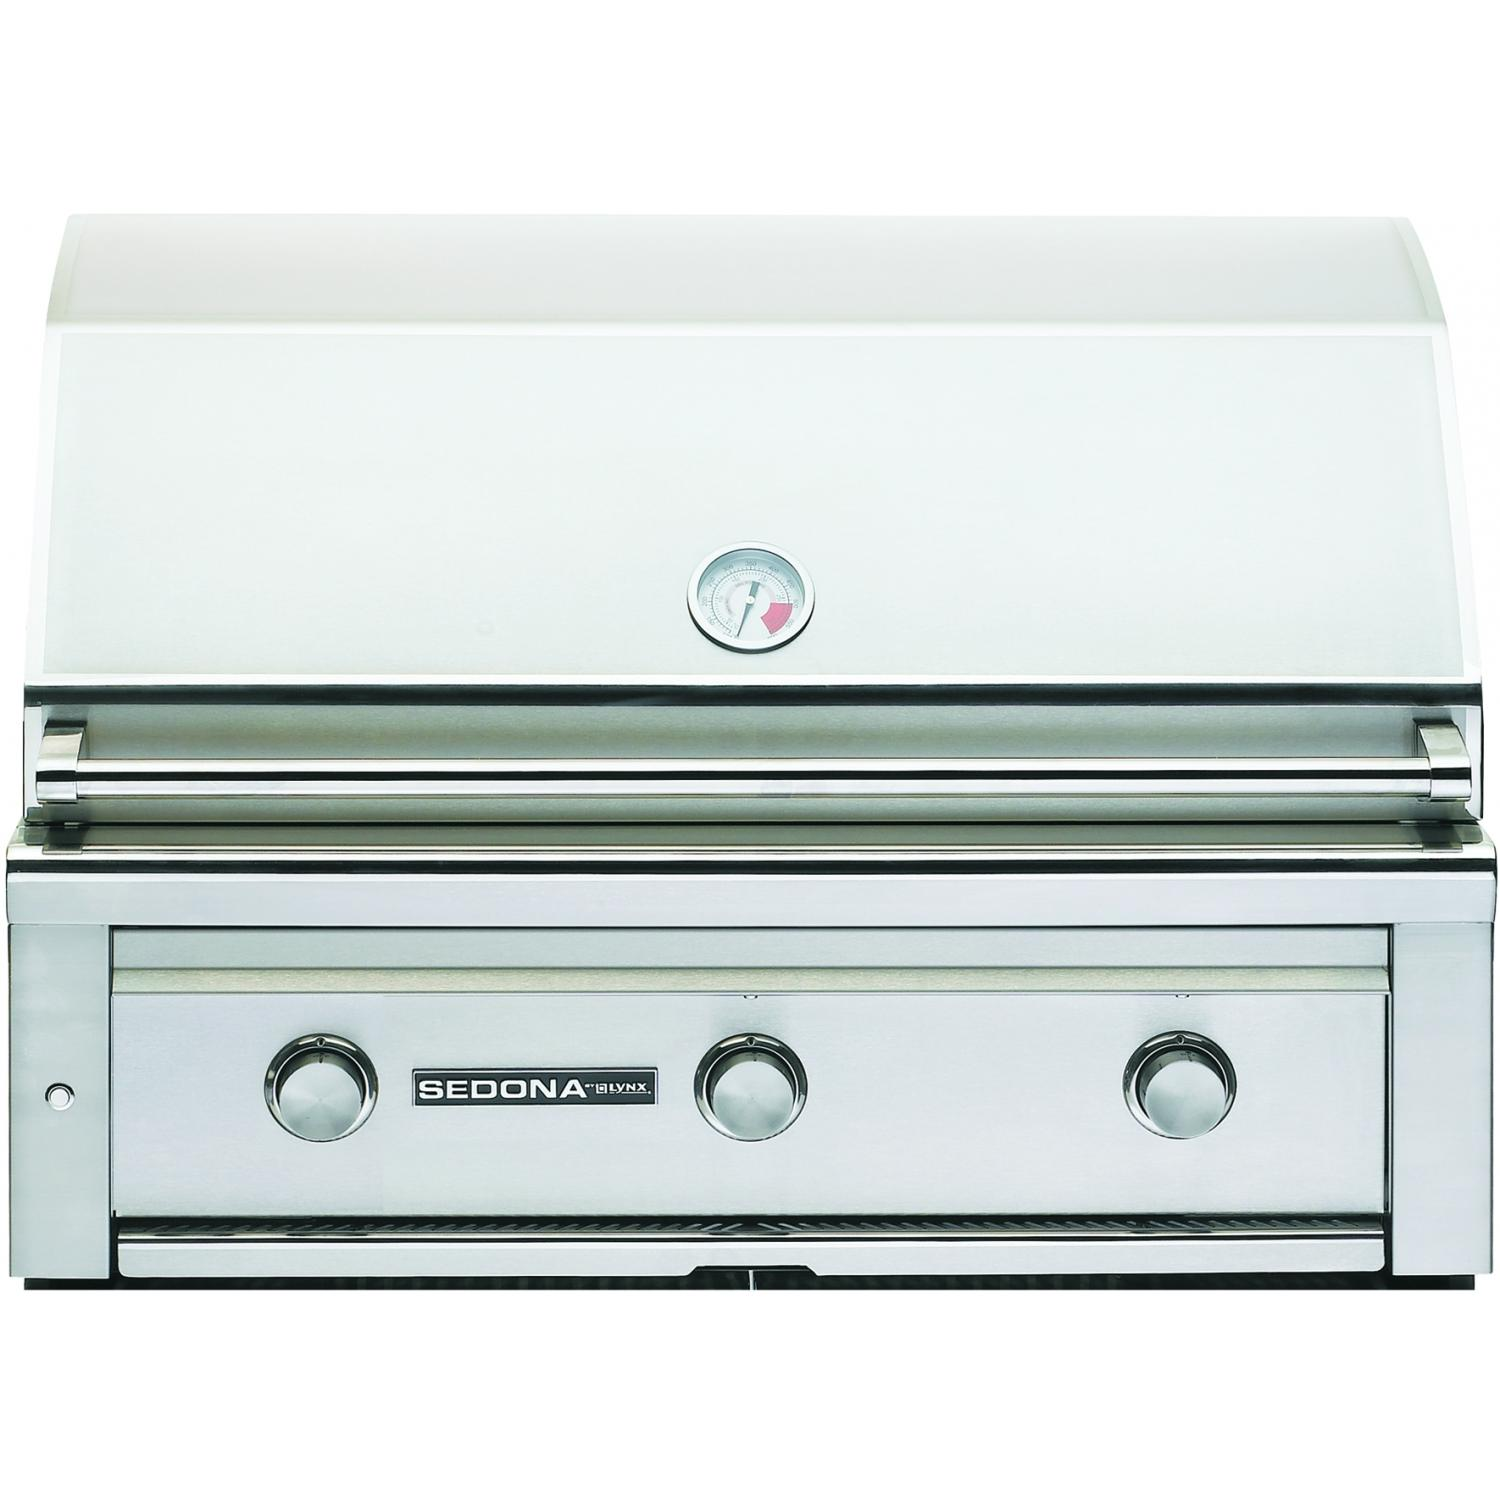 Lynx Sedona By Lynx 36-inch Built-in Propane Gas Grill With Prosear Burner L600ps at Sears.com